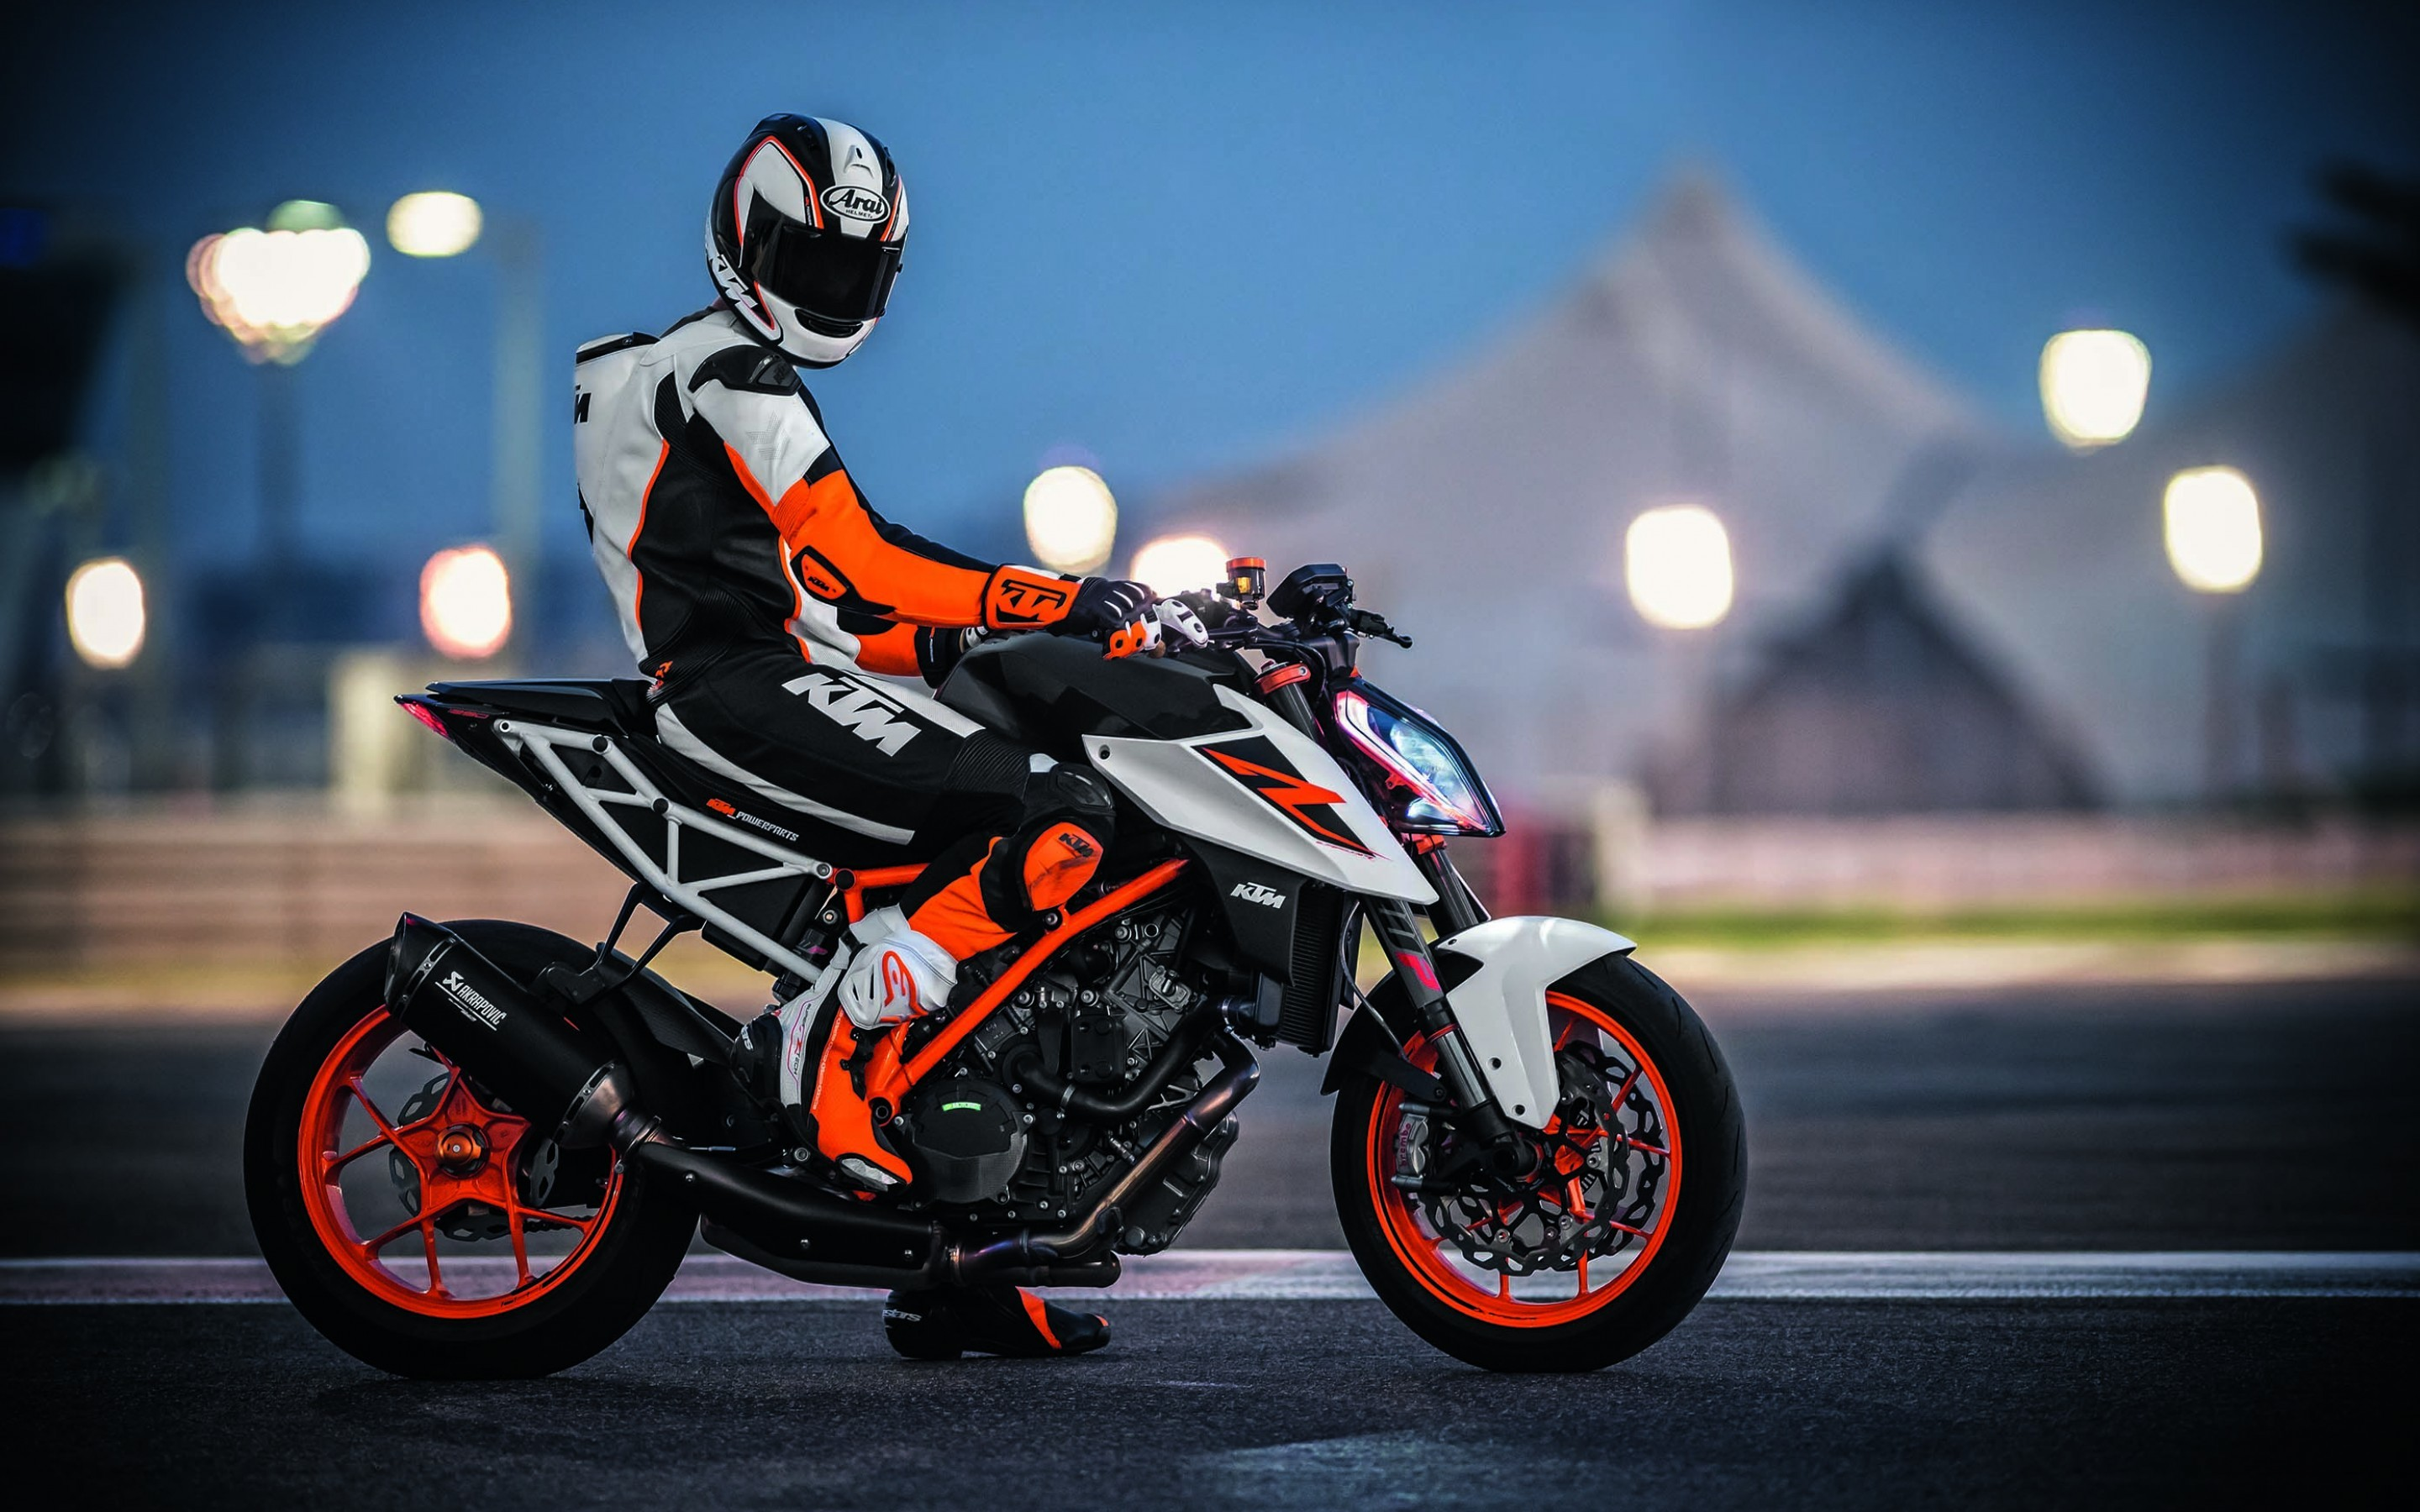 Ktm Bikes Wallpapers ①